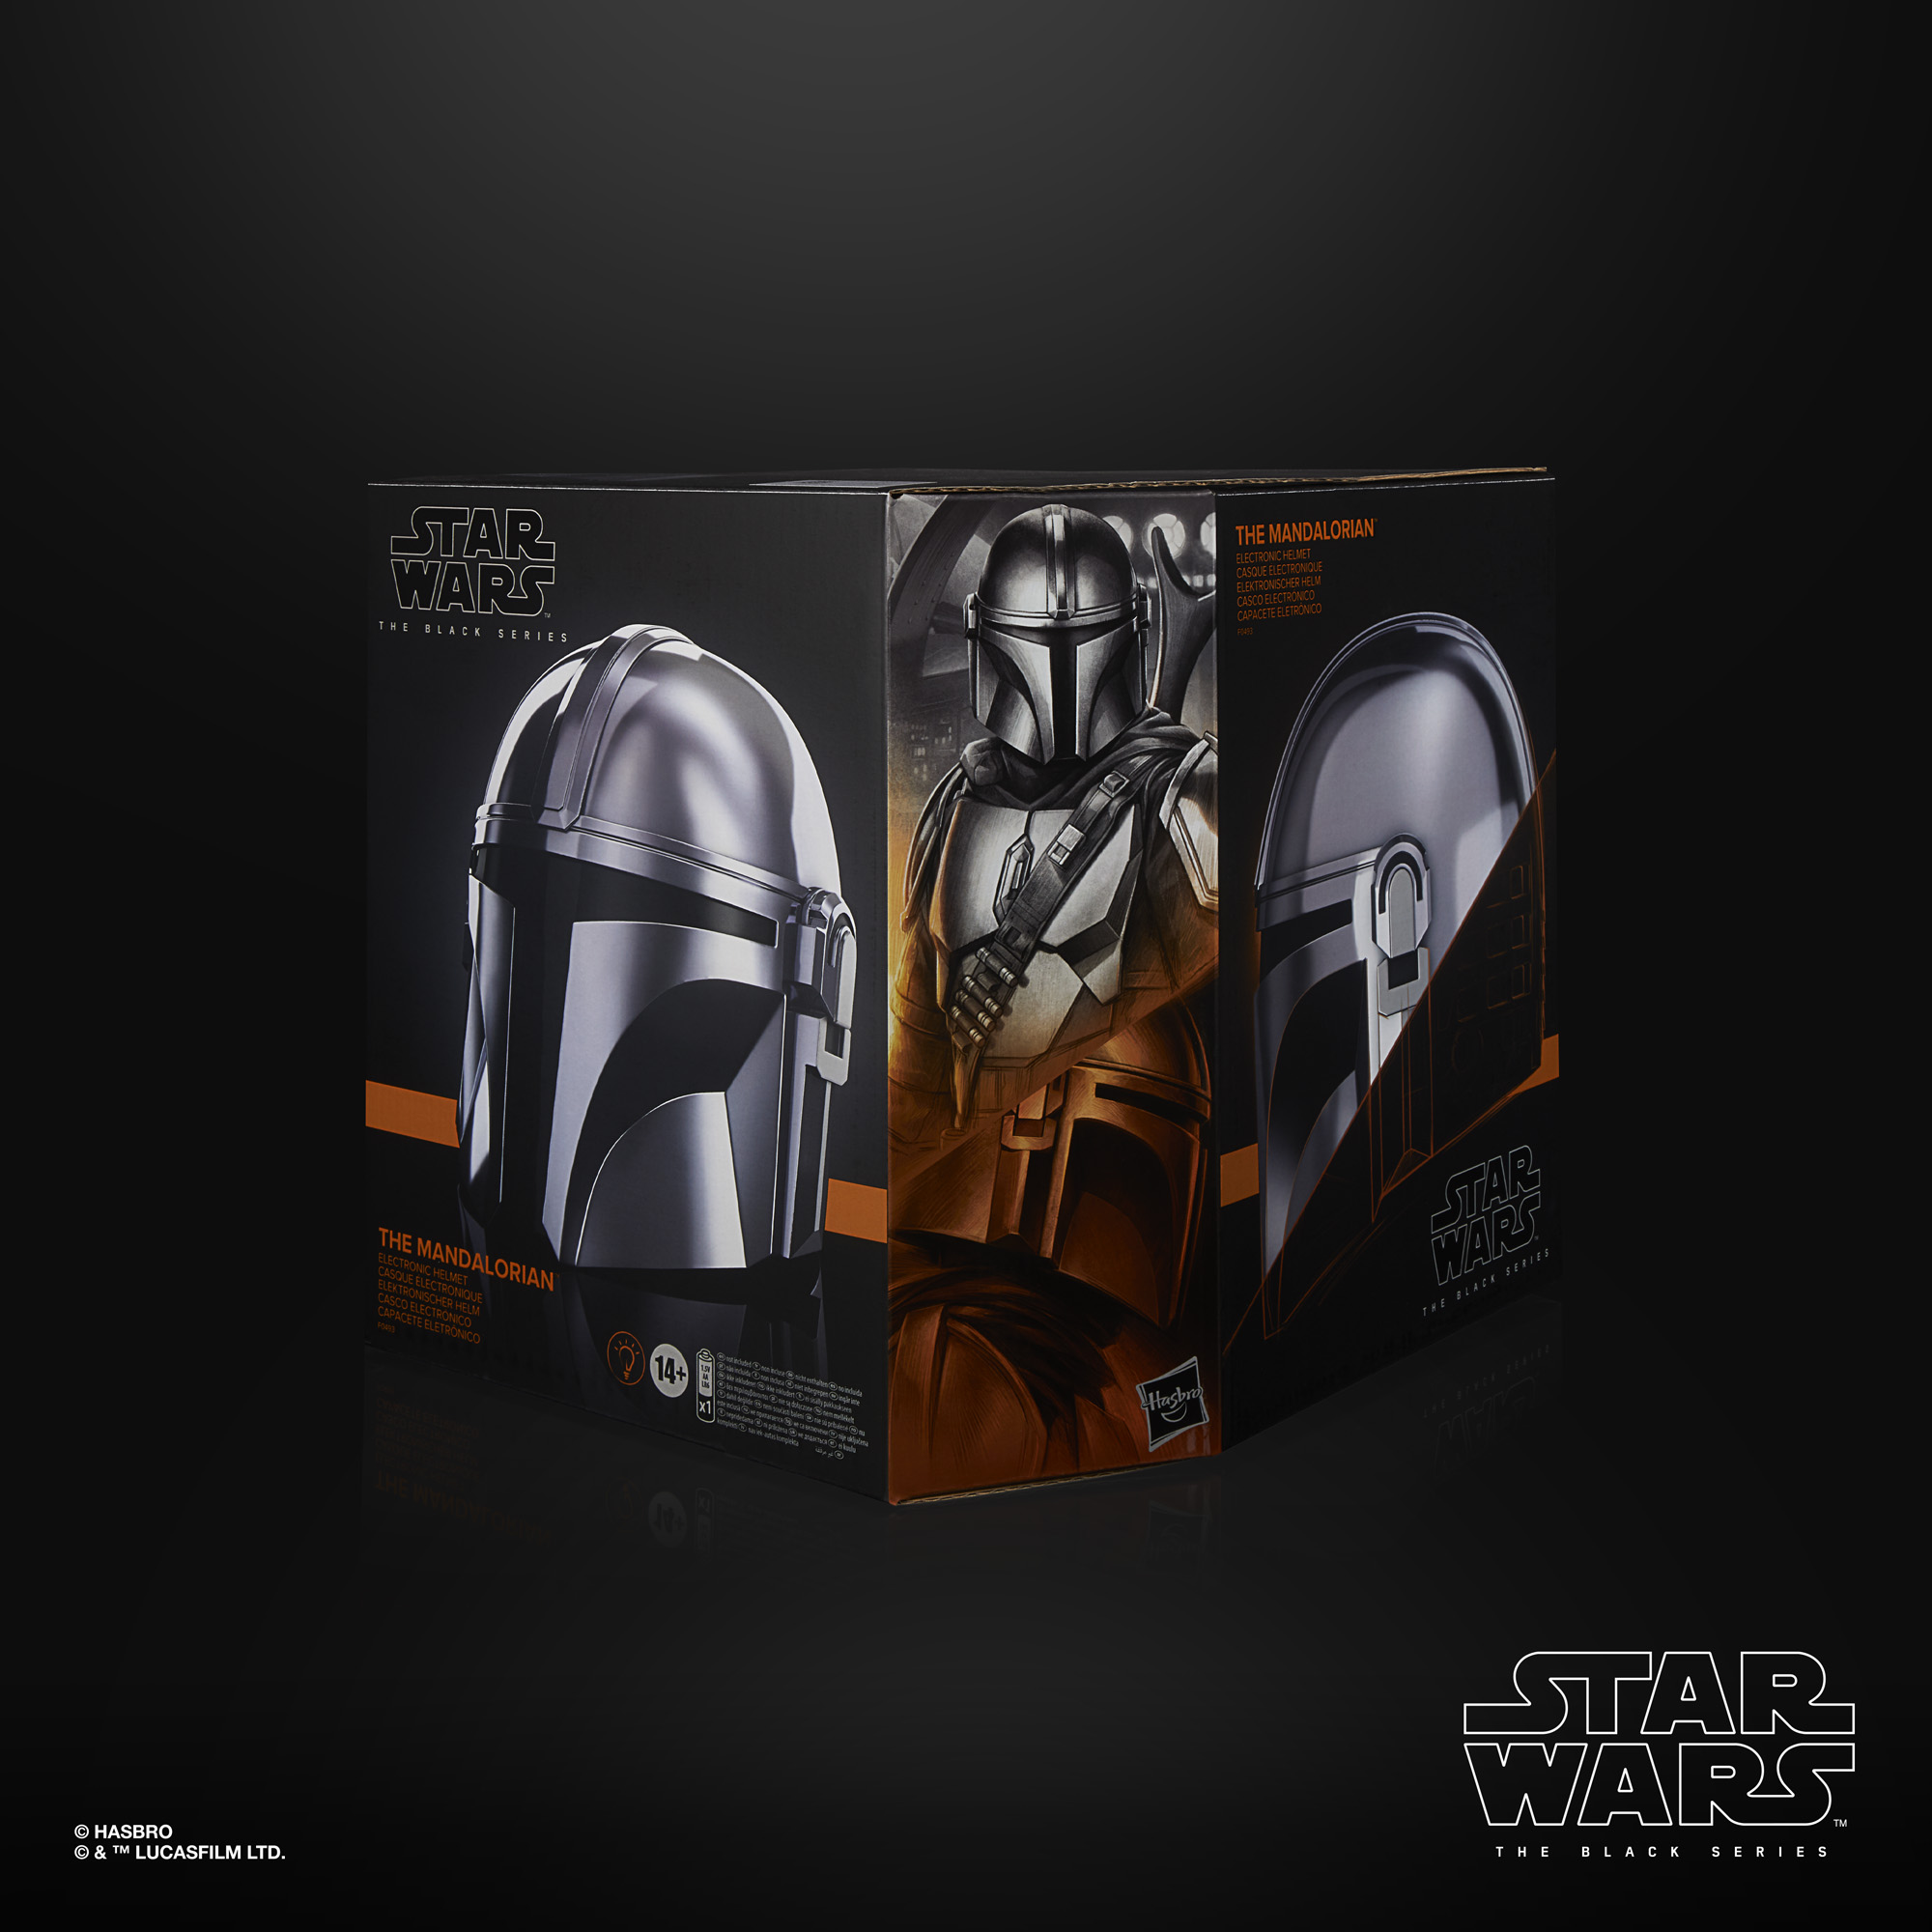 Star Wars The Black Series The Mandalorian Helmet F04935L0 5010993800933